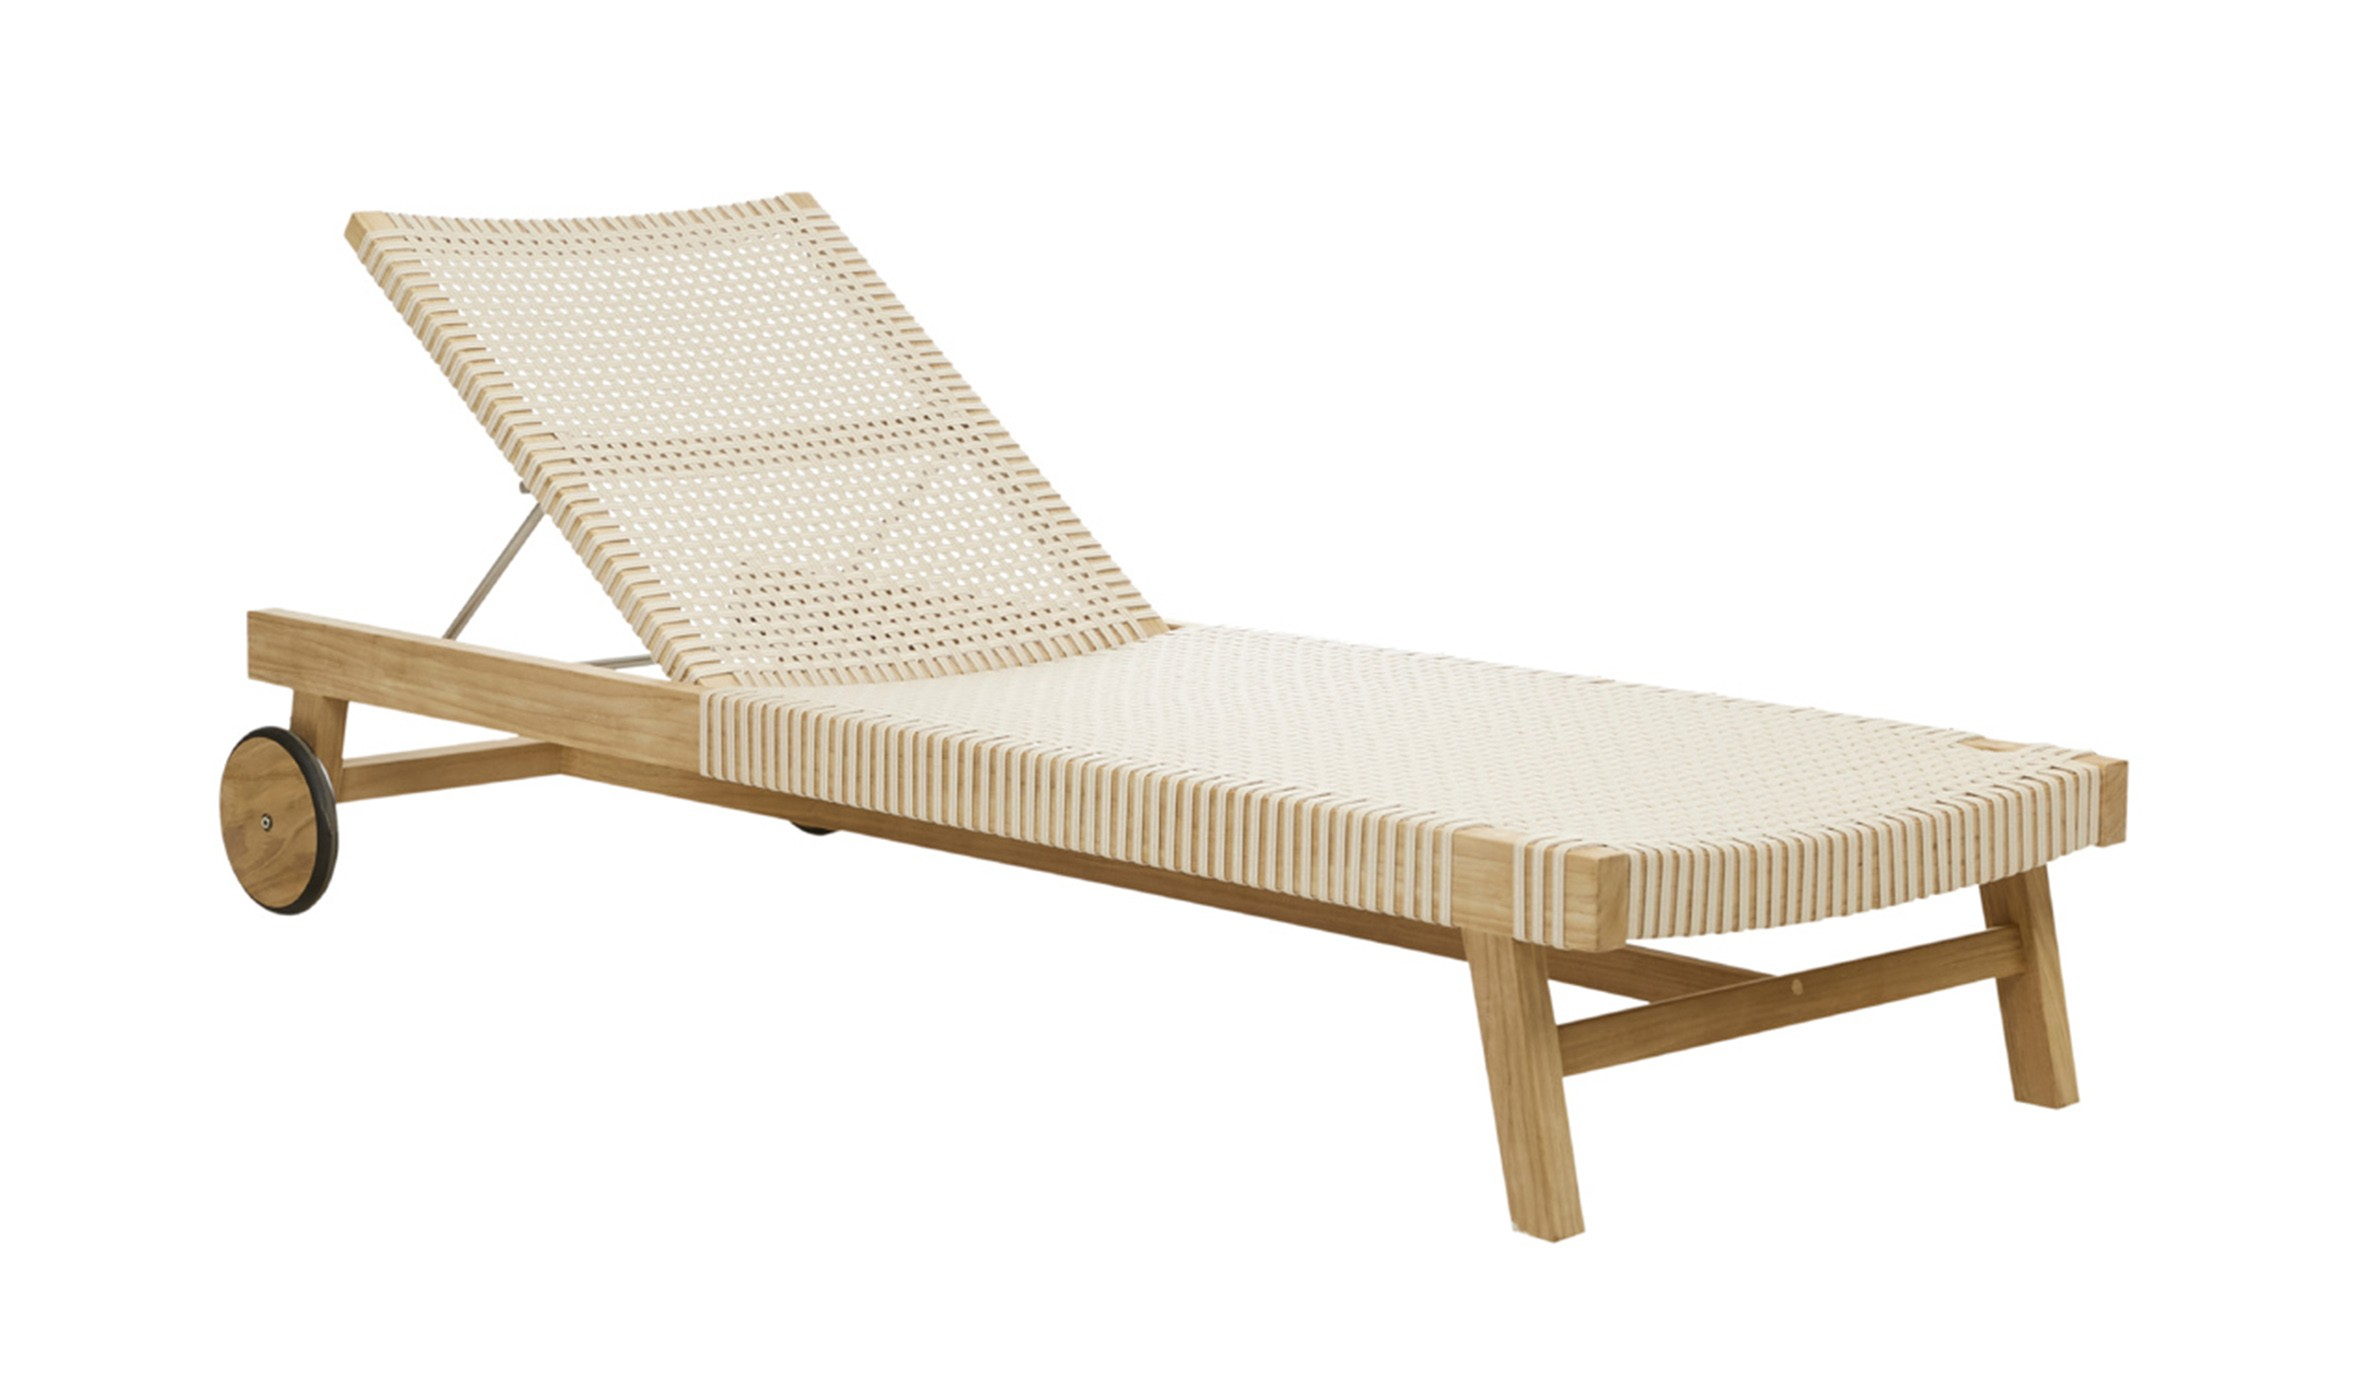 Furniture Thumbnails Sunbeds outdoor-sunbeds-and-daybeds-hamptons-200